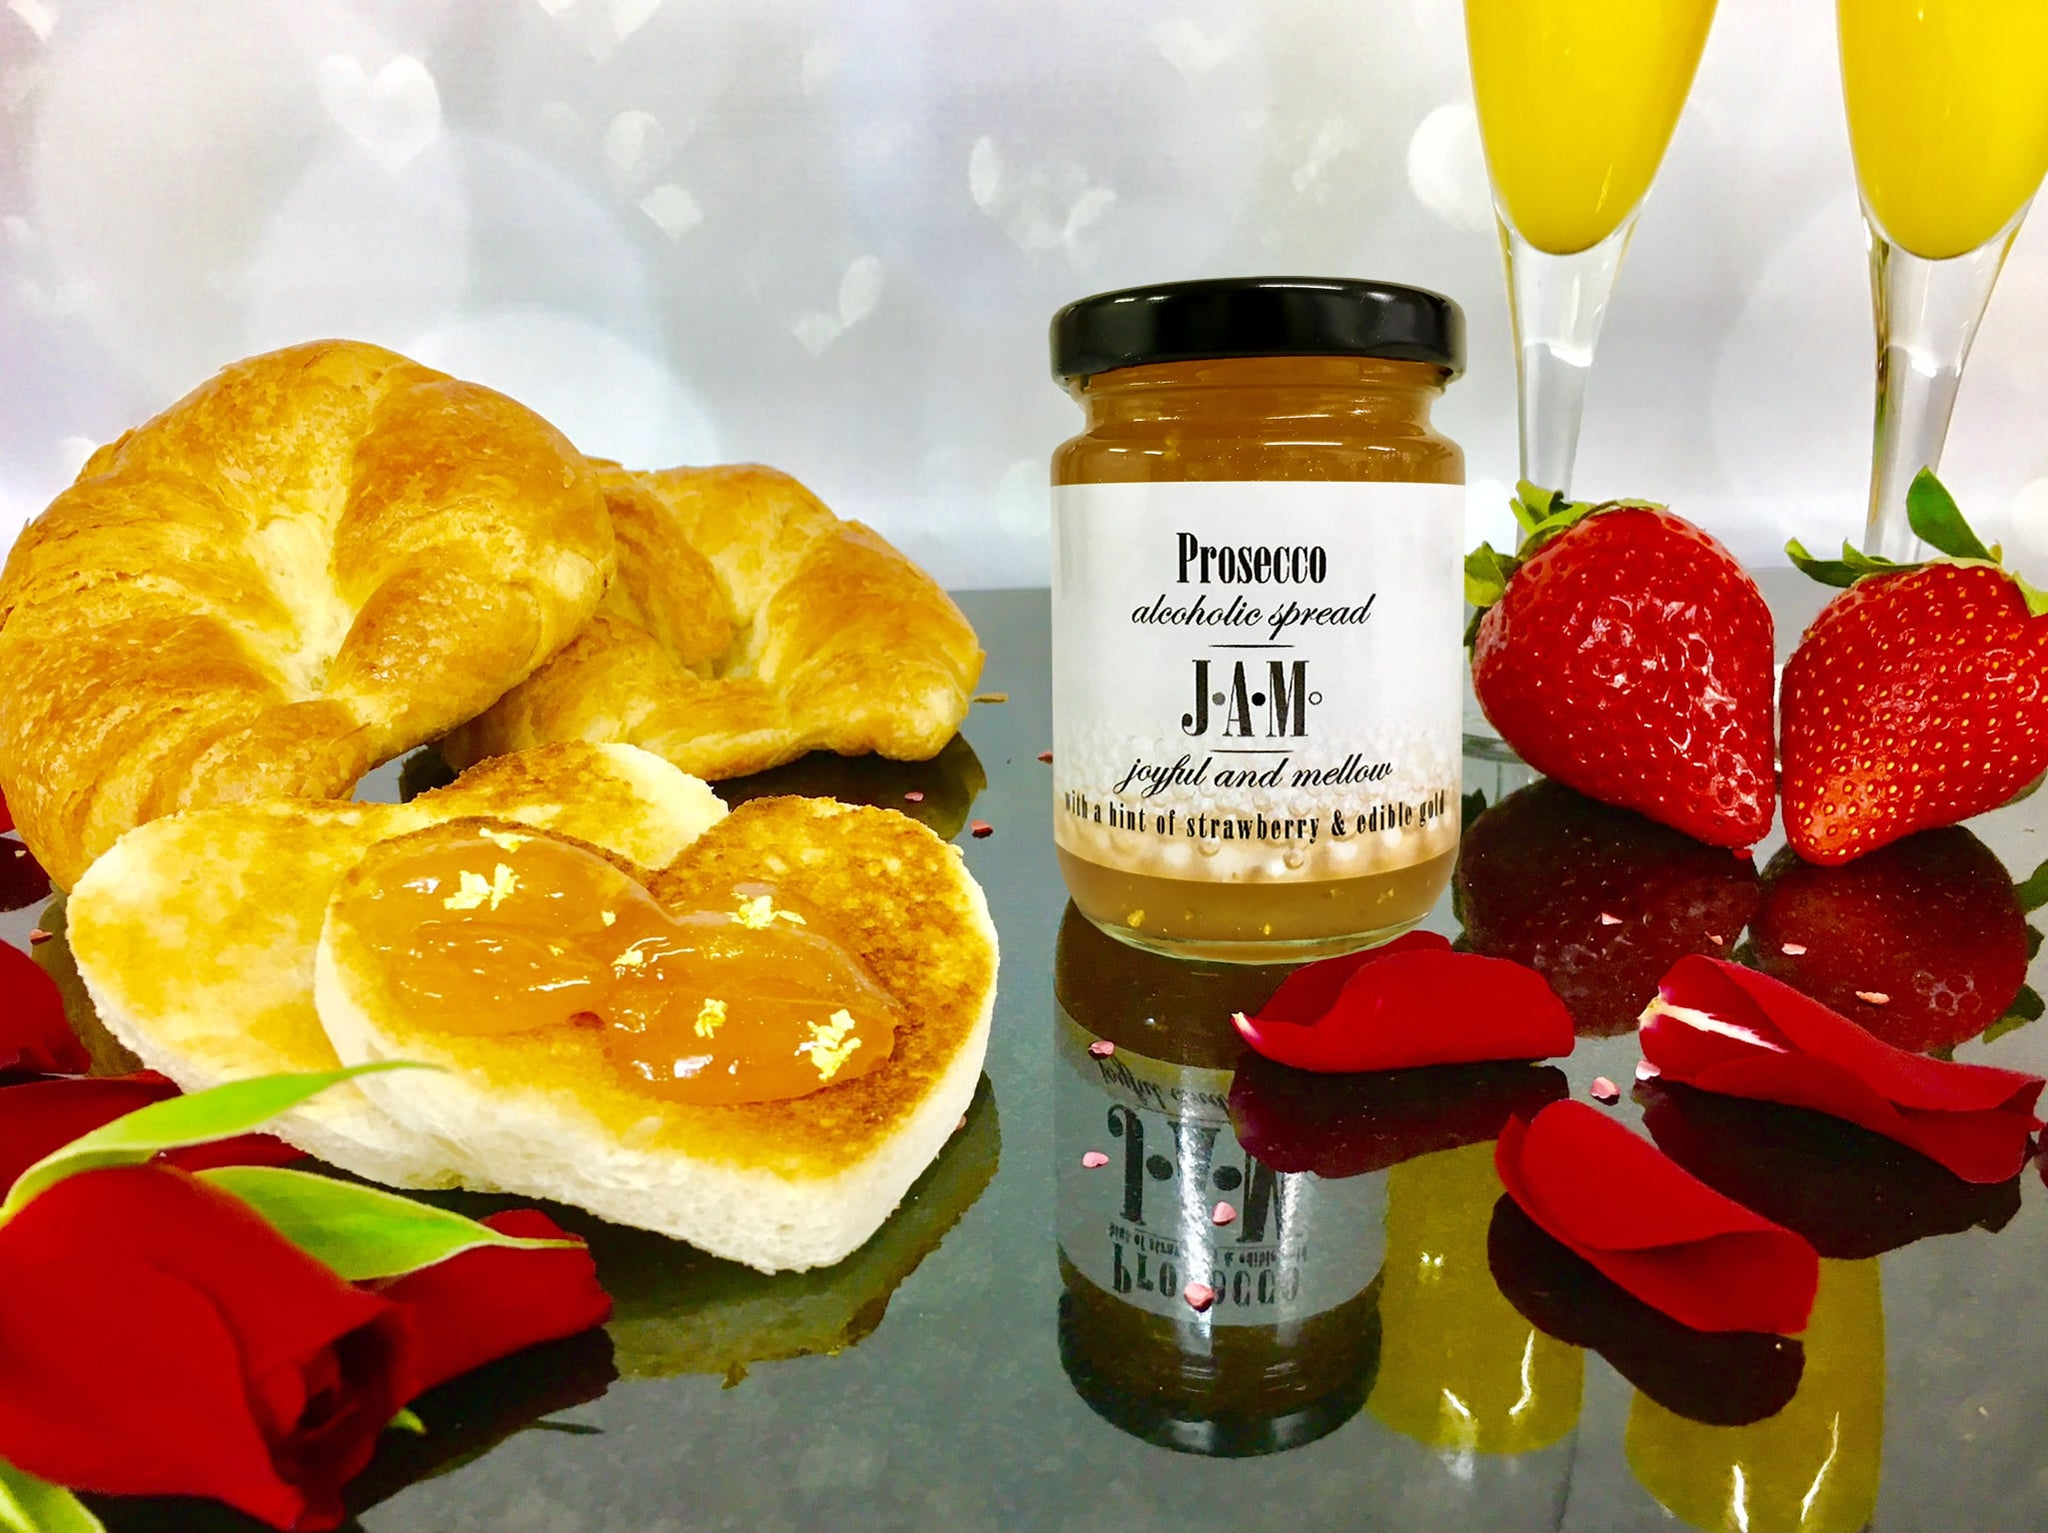 Prosecco Jam with Croissant